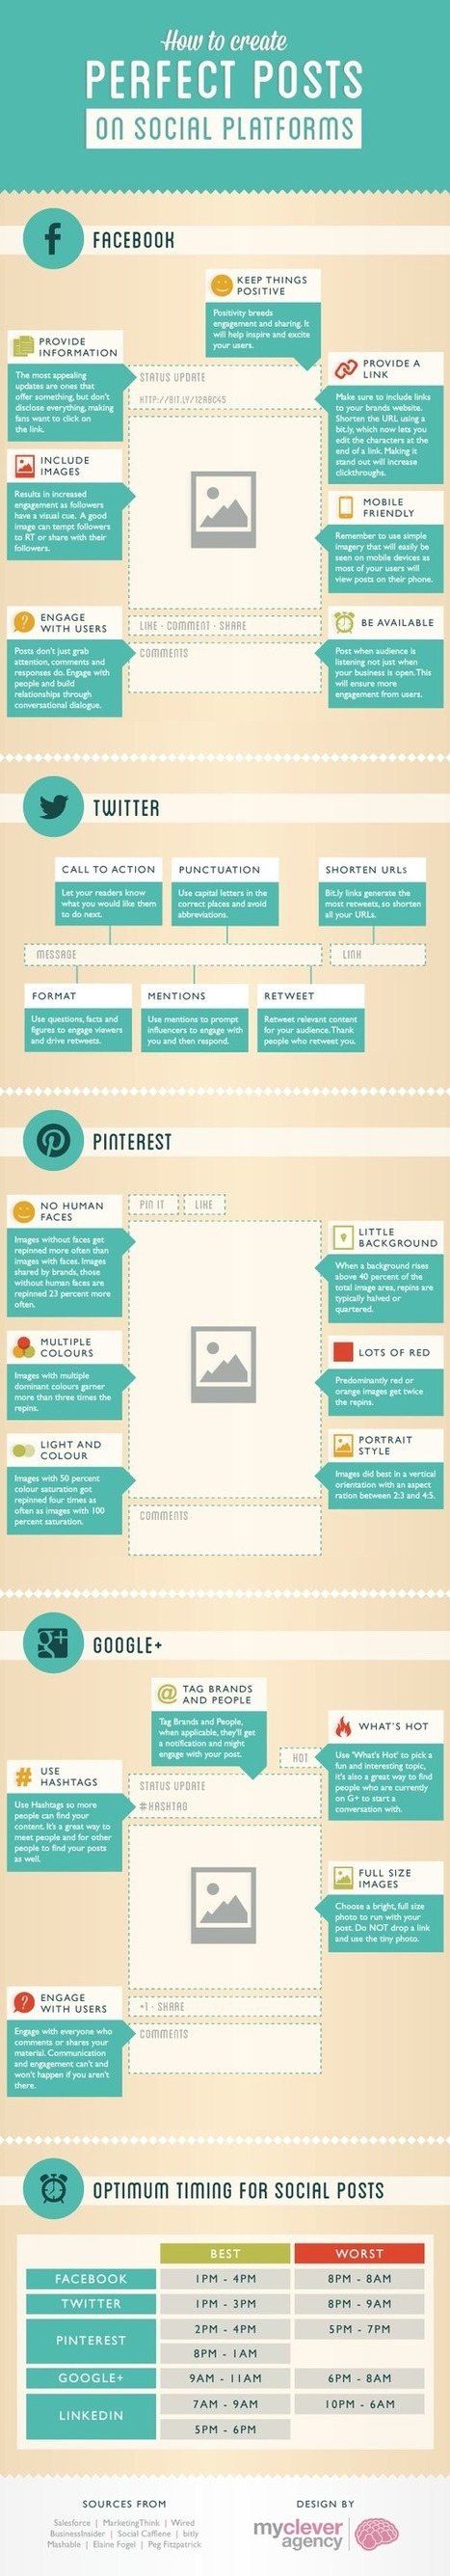 How to Create the Perfect Post on Social Media [INFOGRAPHIC] | Social Media: notizie e curiosità dal web | Scoop.it